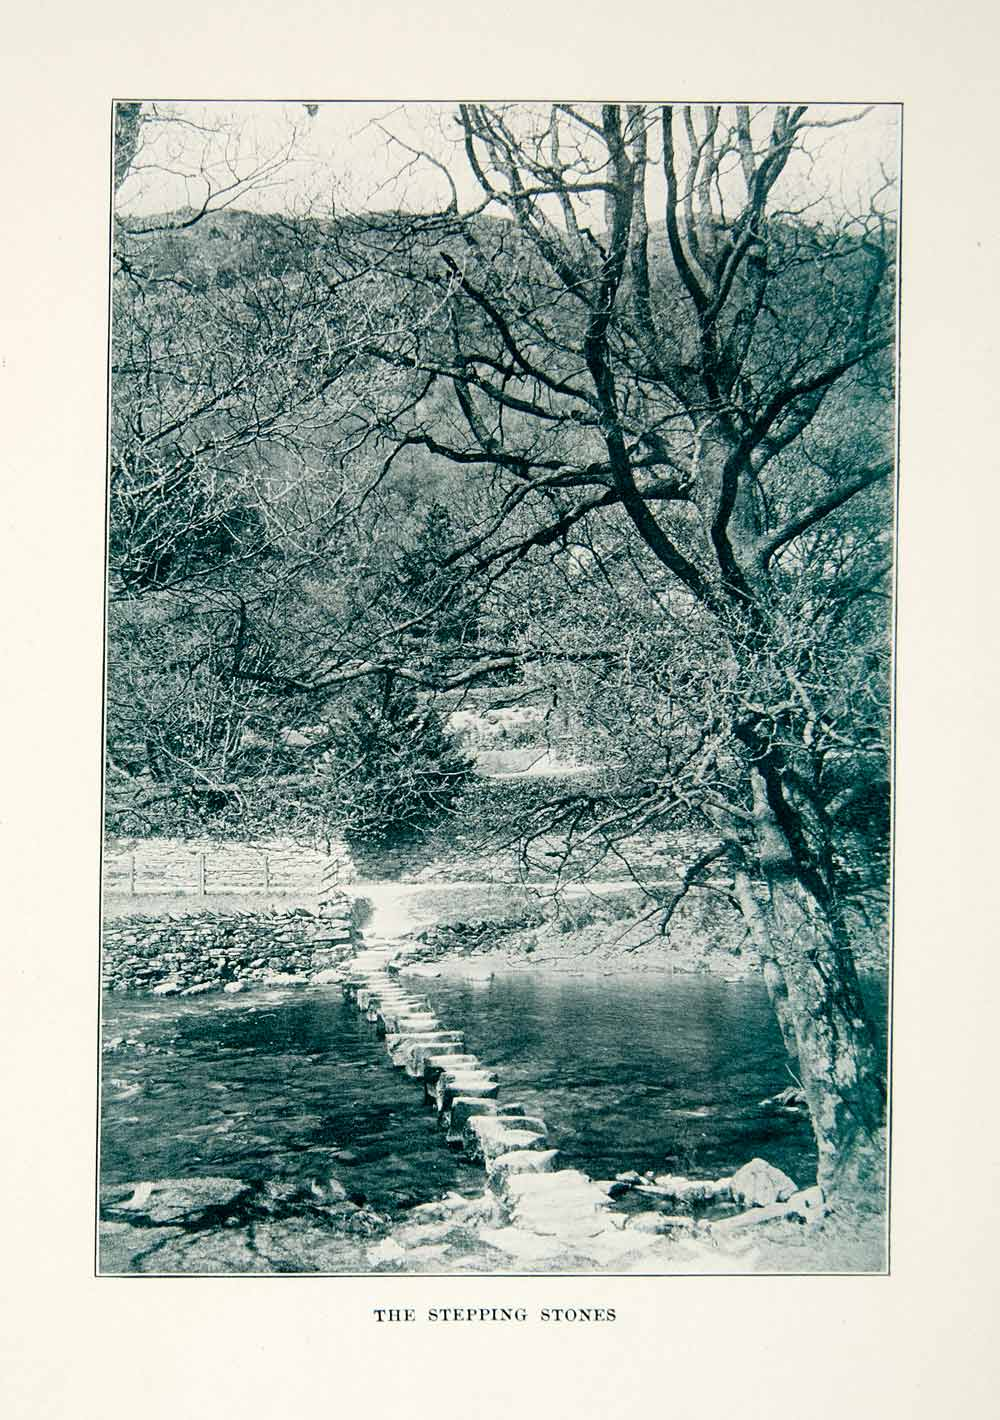 1914 Print Stepping Stones River Wilderness Nature Landscape Outdoors XGXC2